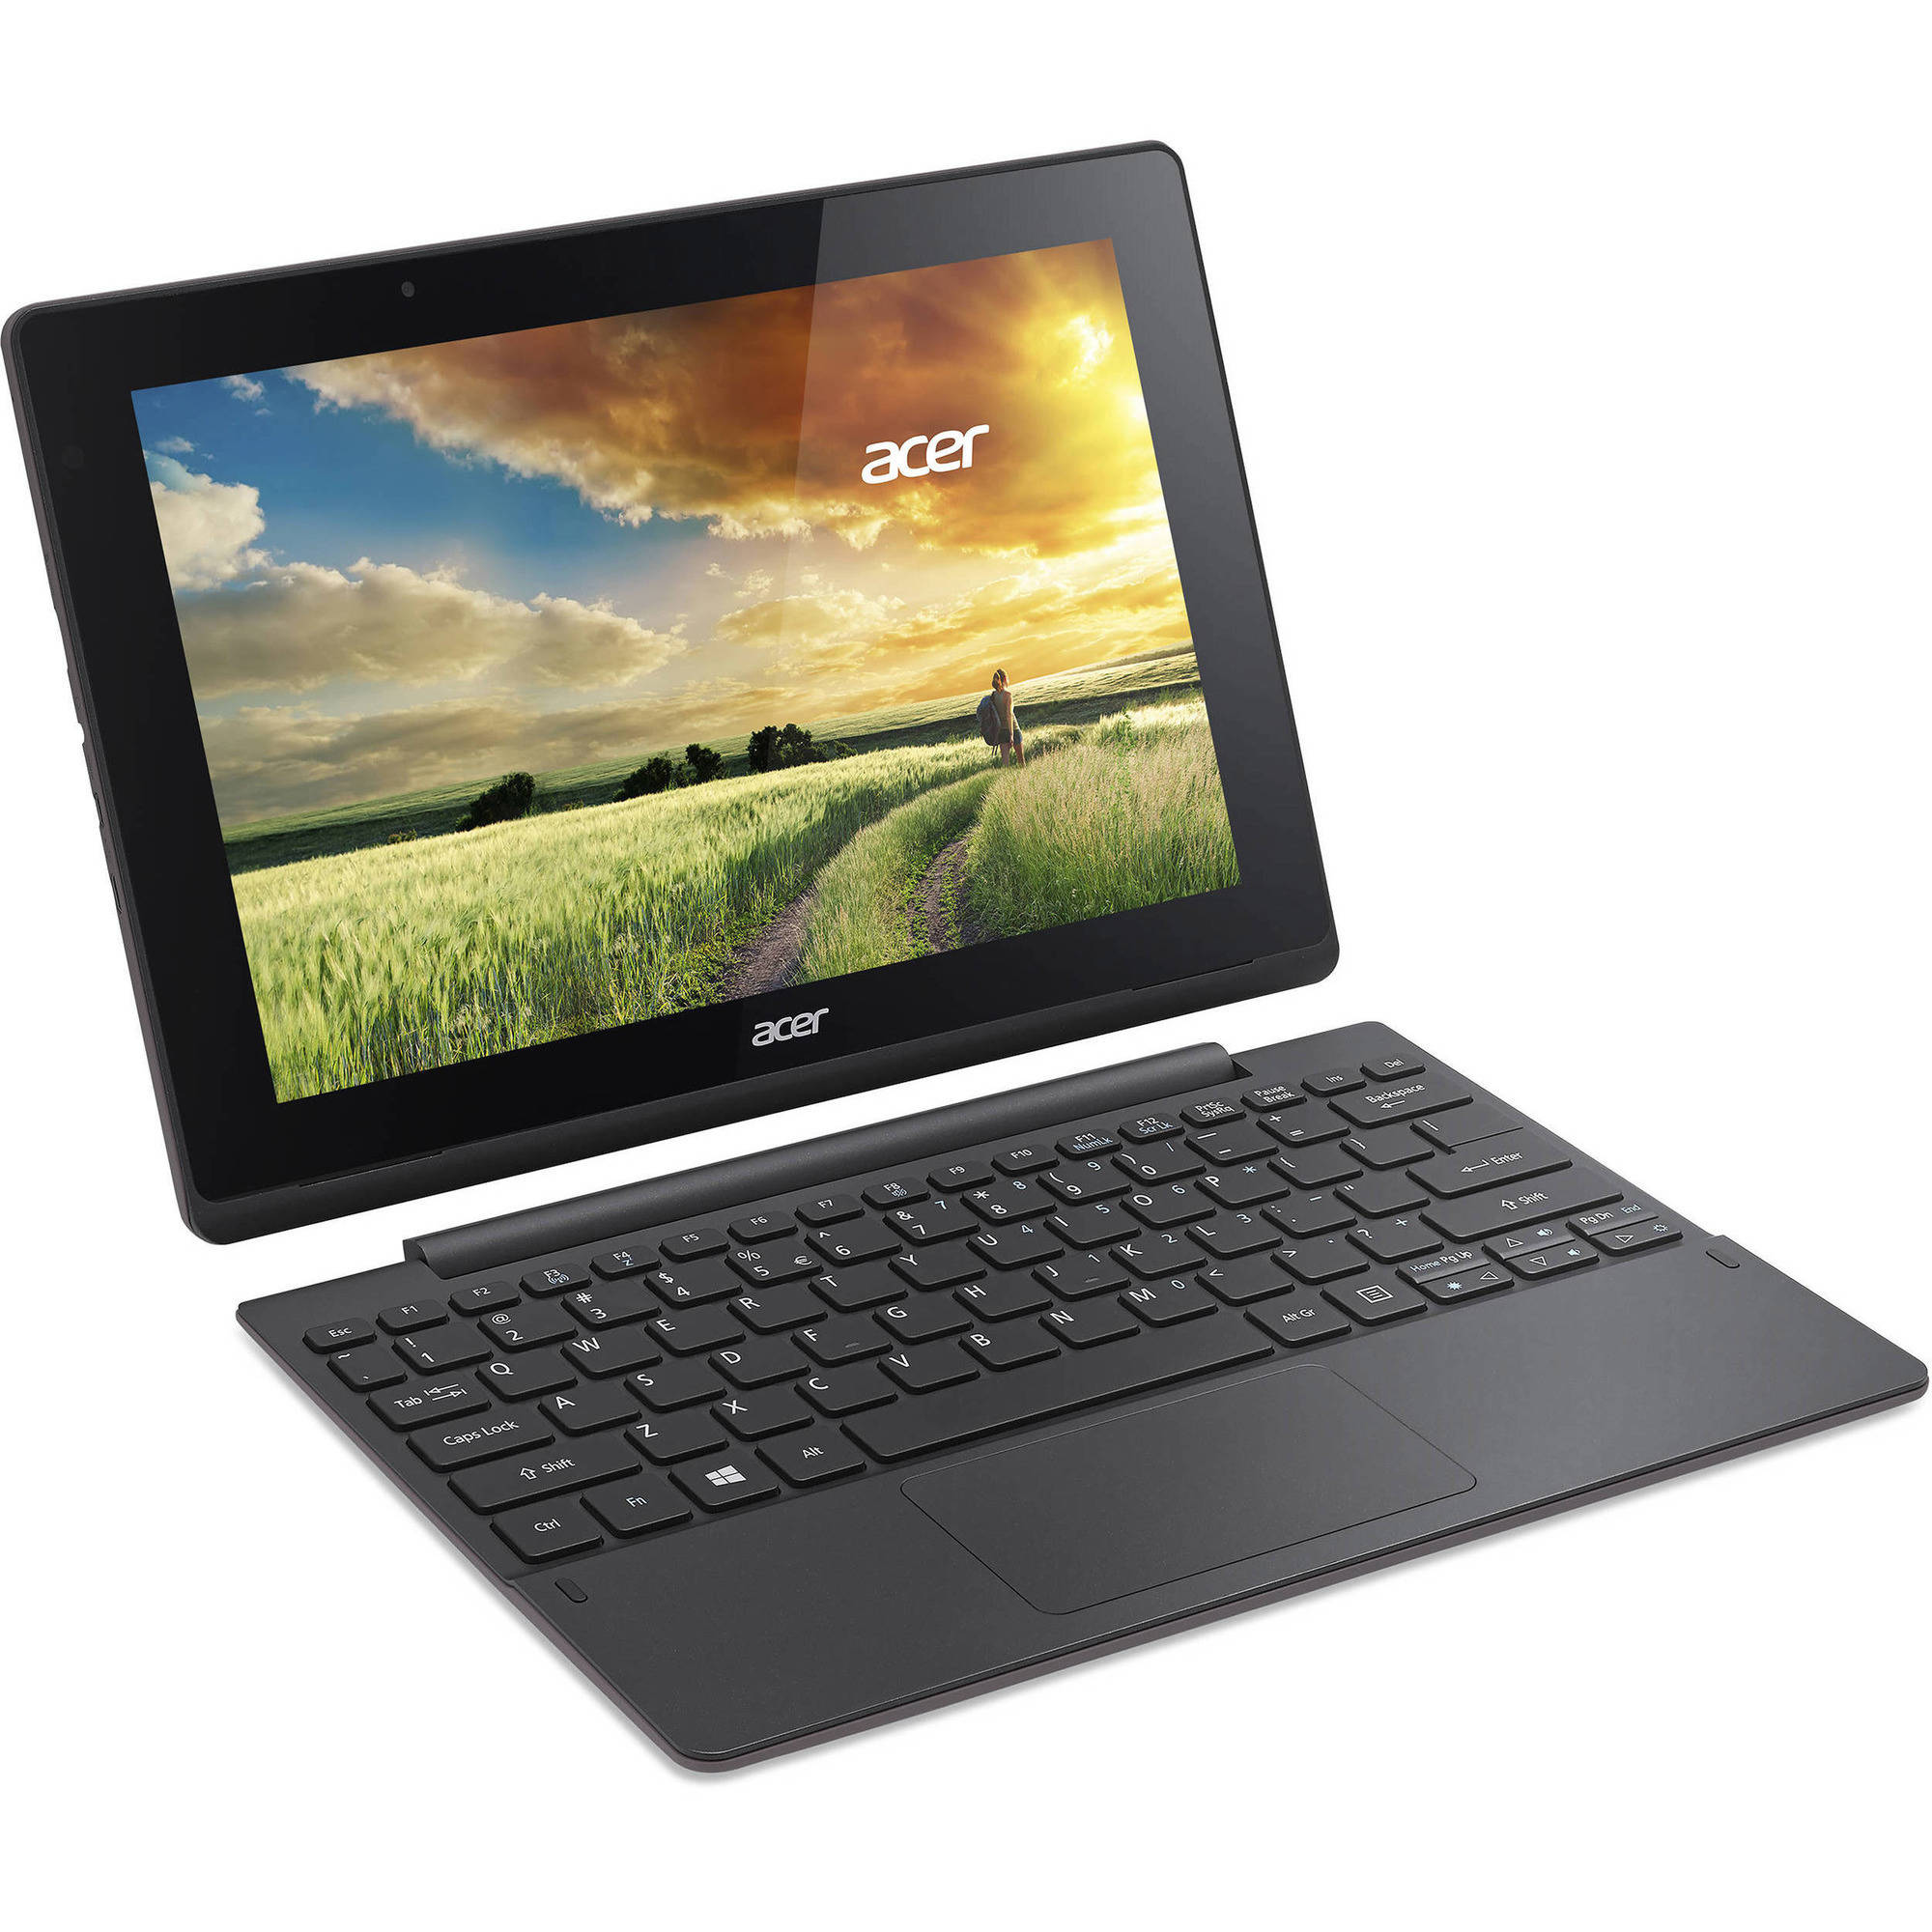 "Manufacturer Refurbished Acer Aspire Switch with WiFi 10.1"" Touchscreen Tablet PC Featuring Windows 10 Home Operating System, Black"